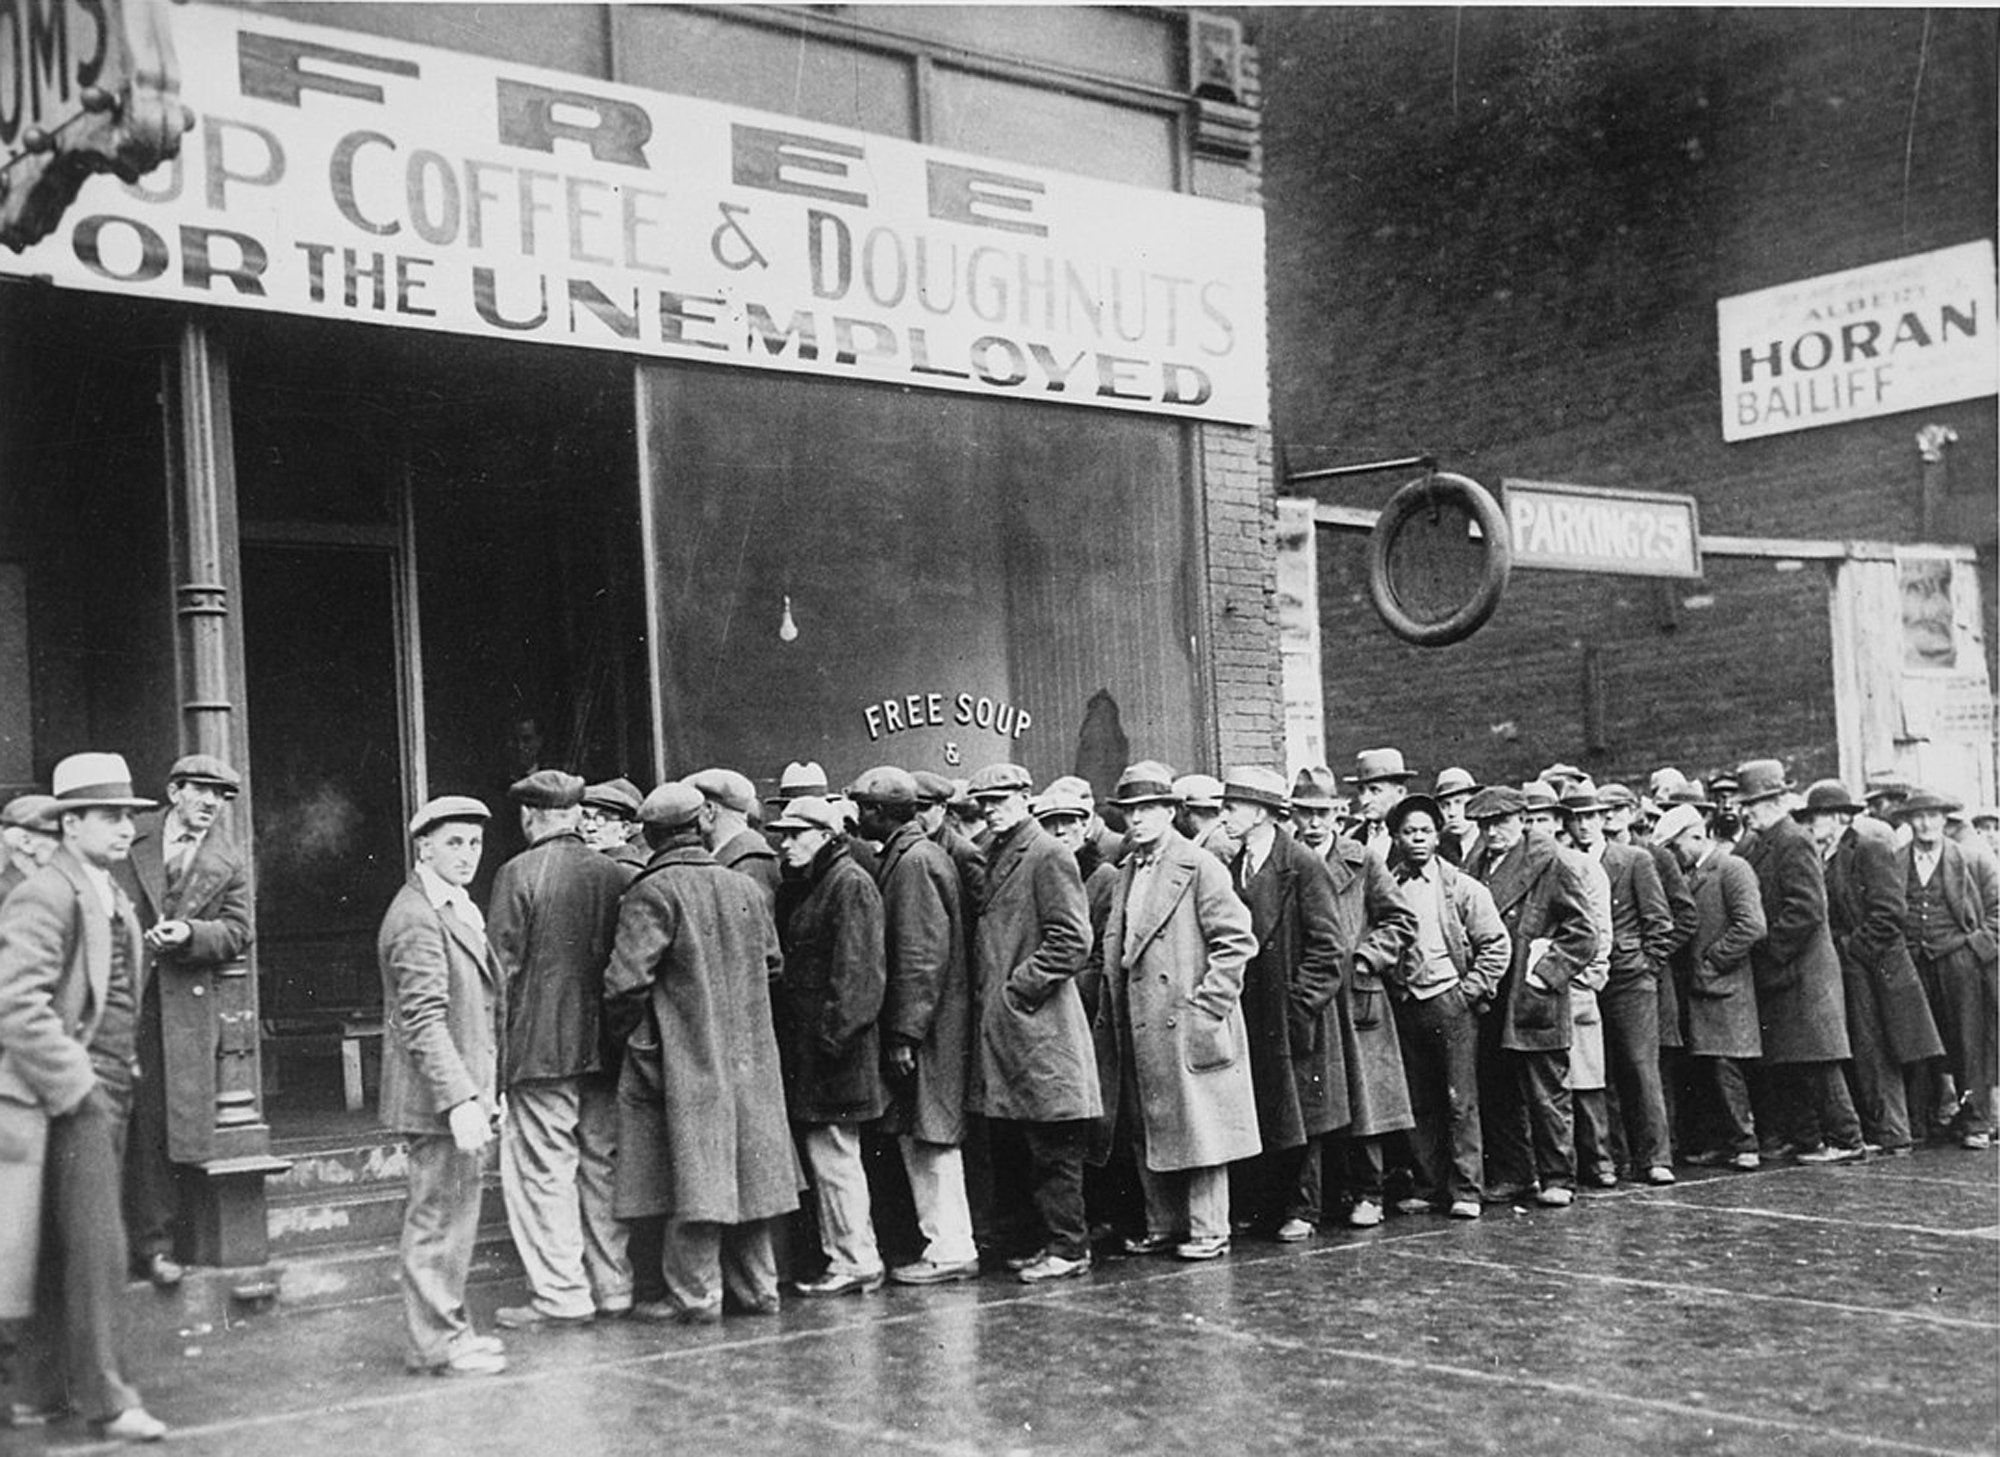 dustbowl_unemployed_men_queued_outside_a_depression_soup_kitchen_1931_-_nara.jpg__2000x1457_q85_crop_subsampling-2_upscale.jpg